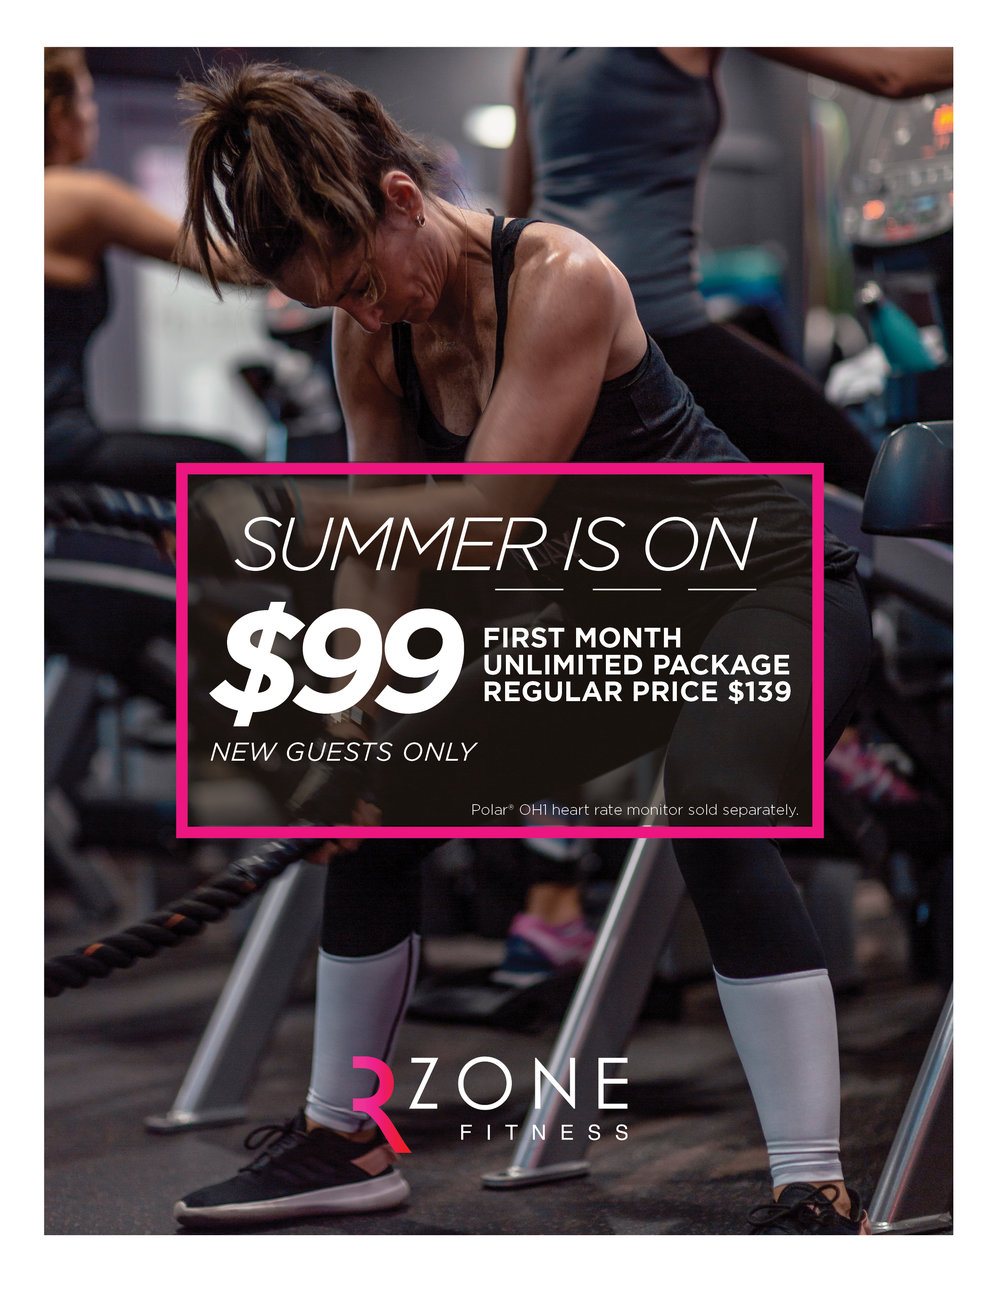 This promotion is for *New Guests* that haven't purchased a rz package. ONLY APPLIES TO UNLIMITED PACKAGE. Polar OH1 heart rate monitor SOLD SEPARATELY.This promo is only for our Gables and Pinecrest location.